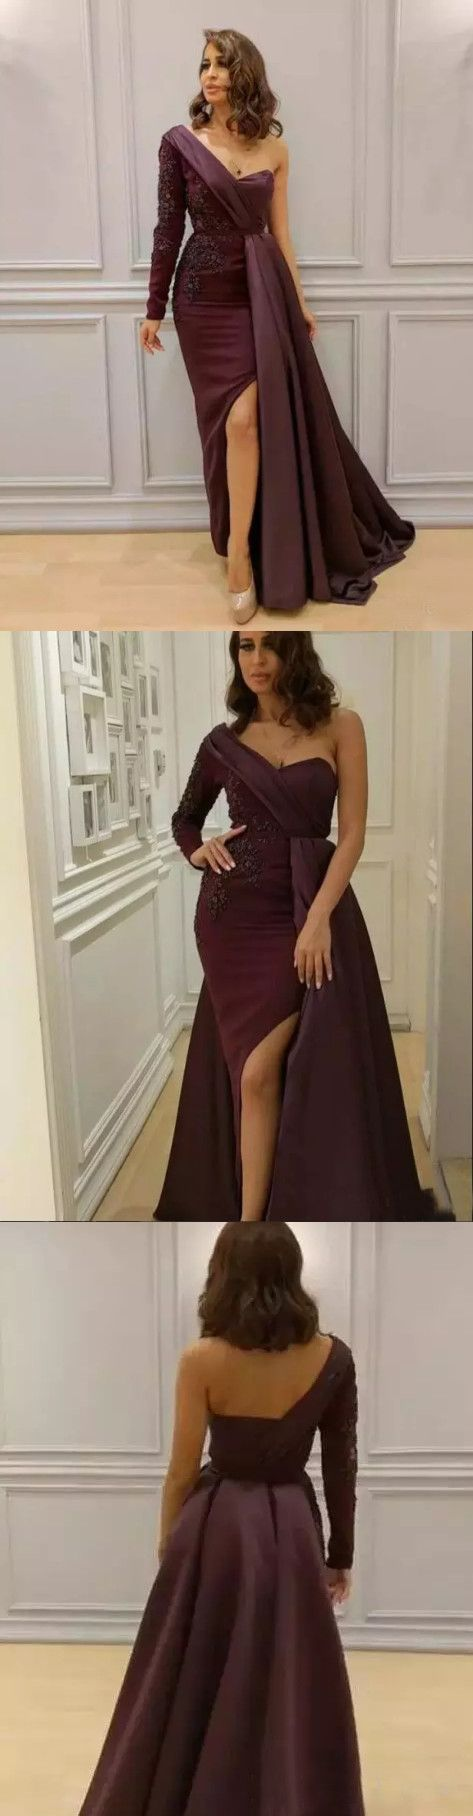 chic one shoulder prom dresses long sleeve burgundy long prom